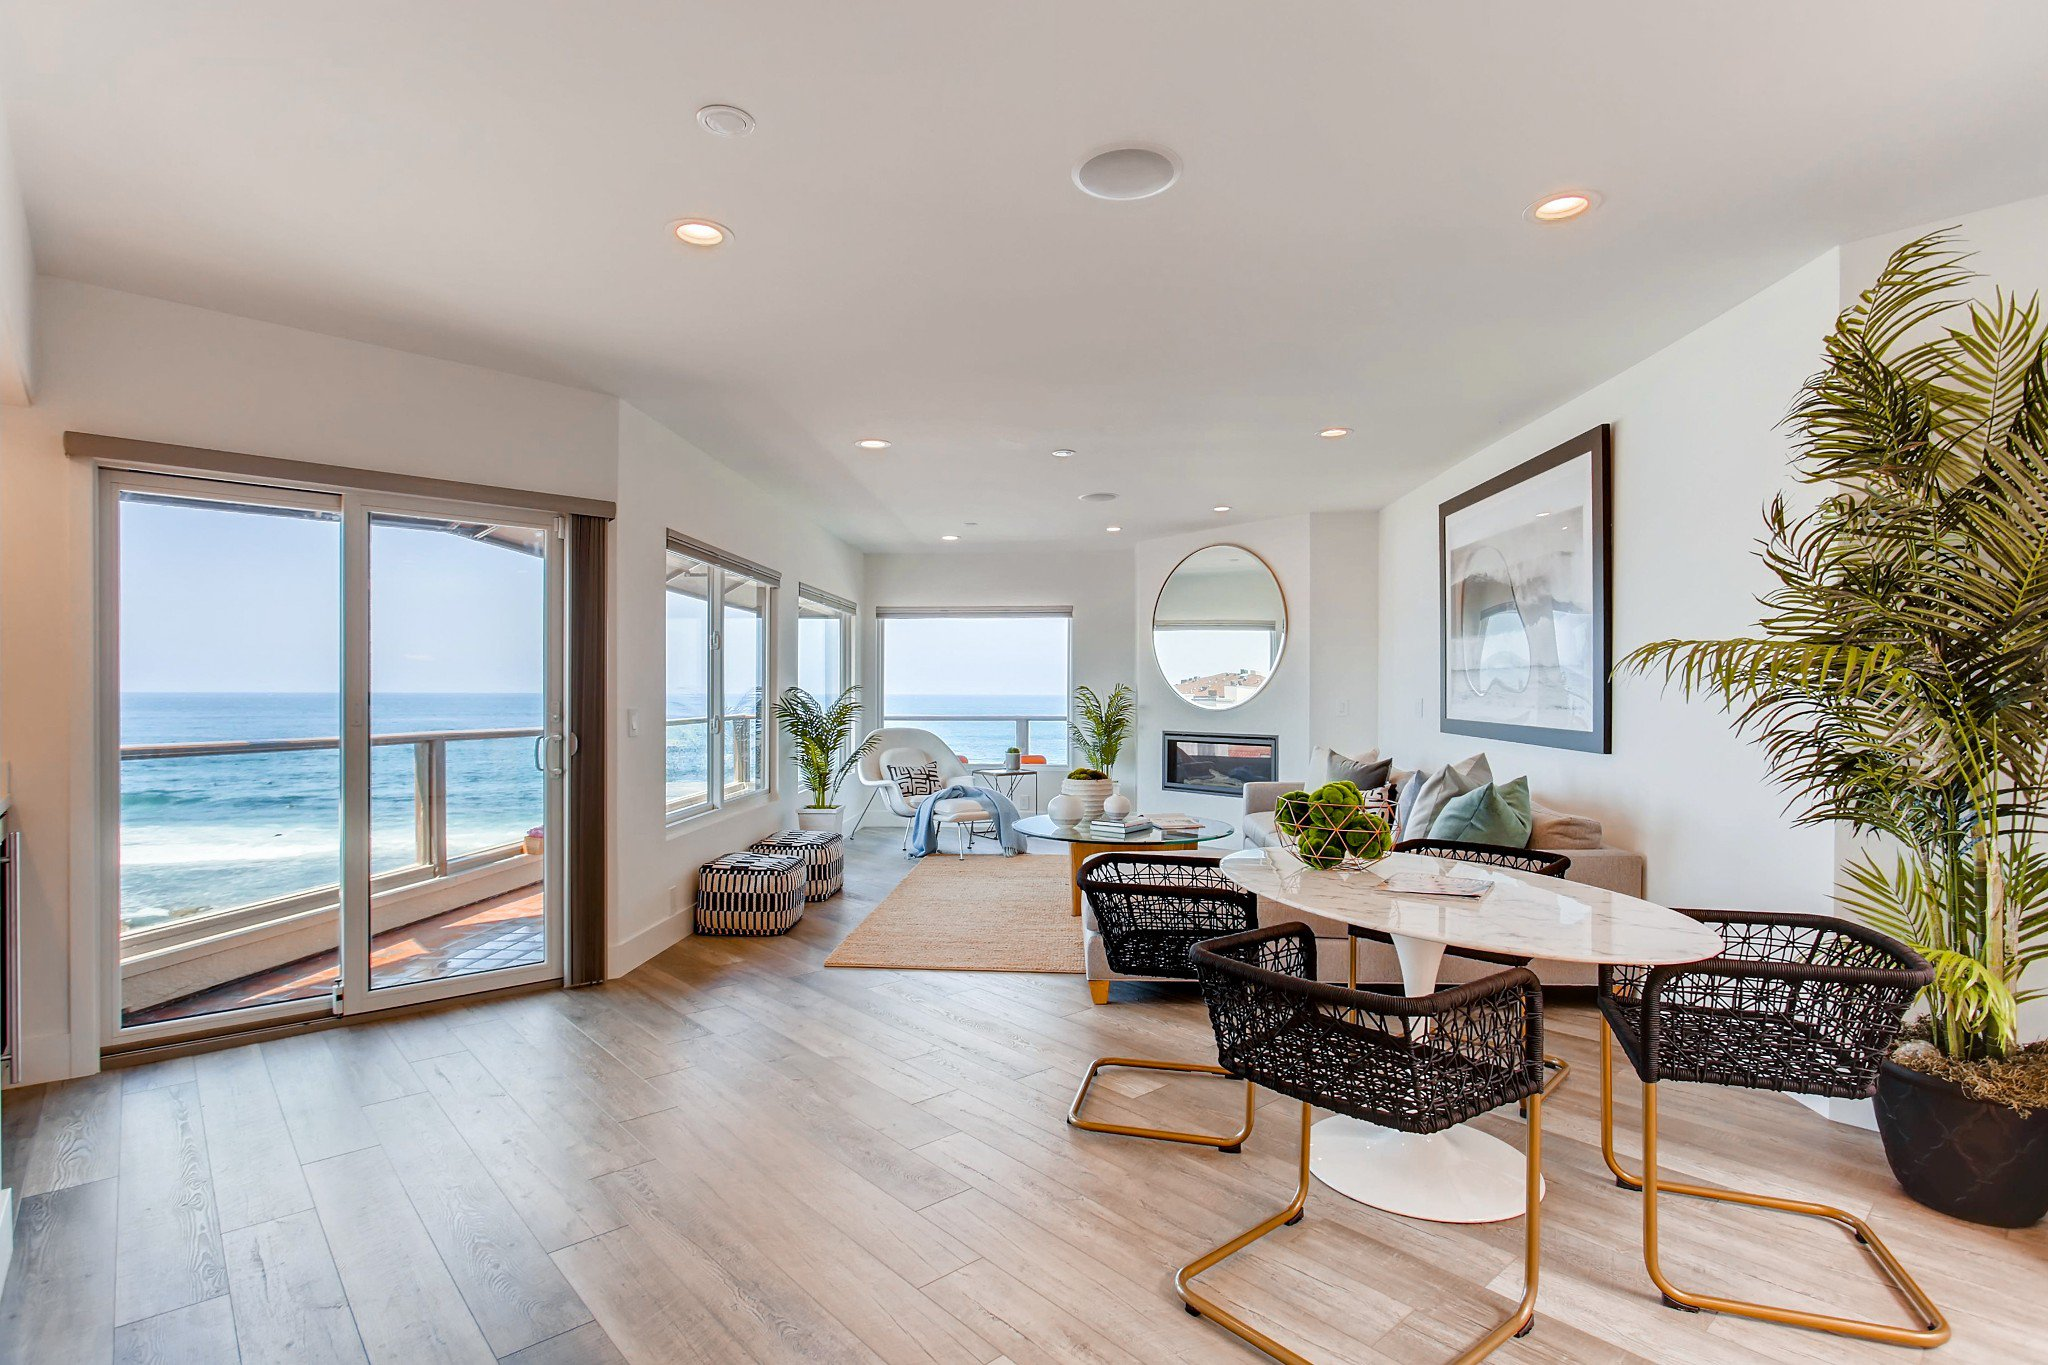 Main Photo: Condo for sale : 2 bedrooms : 333 Coast Blvd Unit 20, La Jolla, CA 92037 in La Jolla